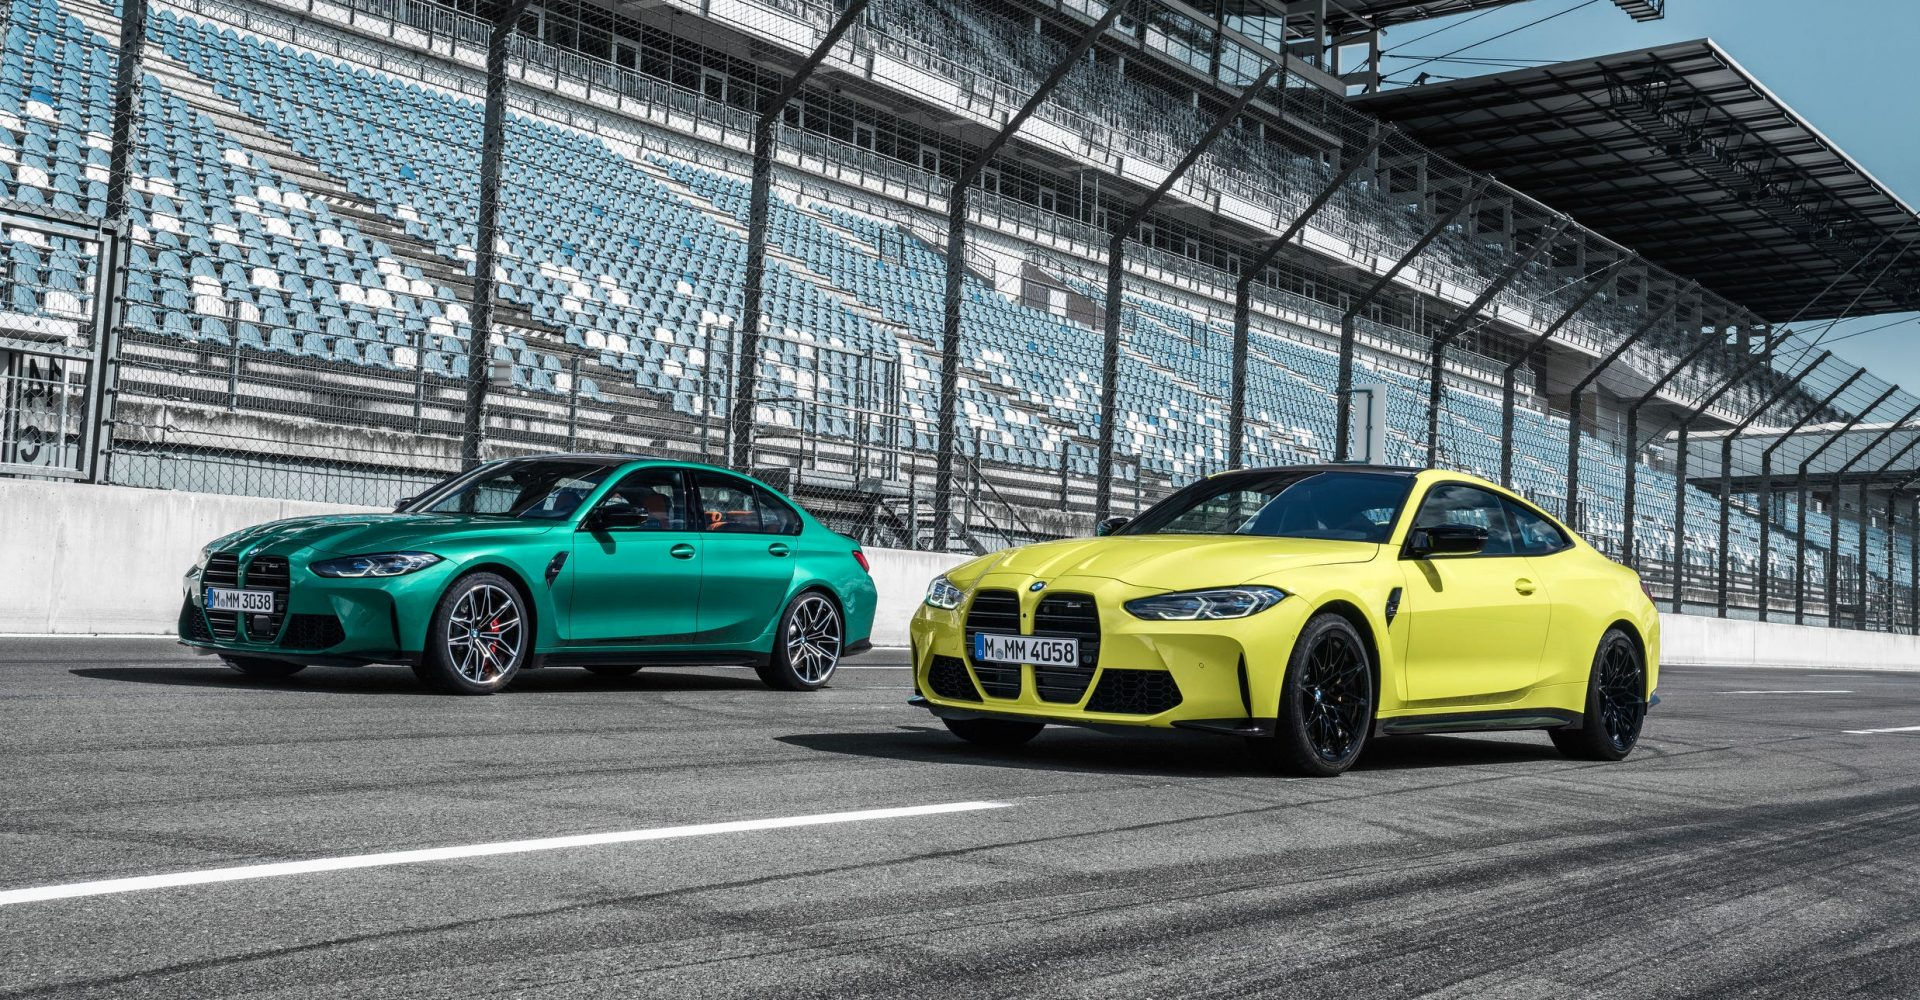 BMW unveils new M3 and M4